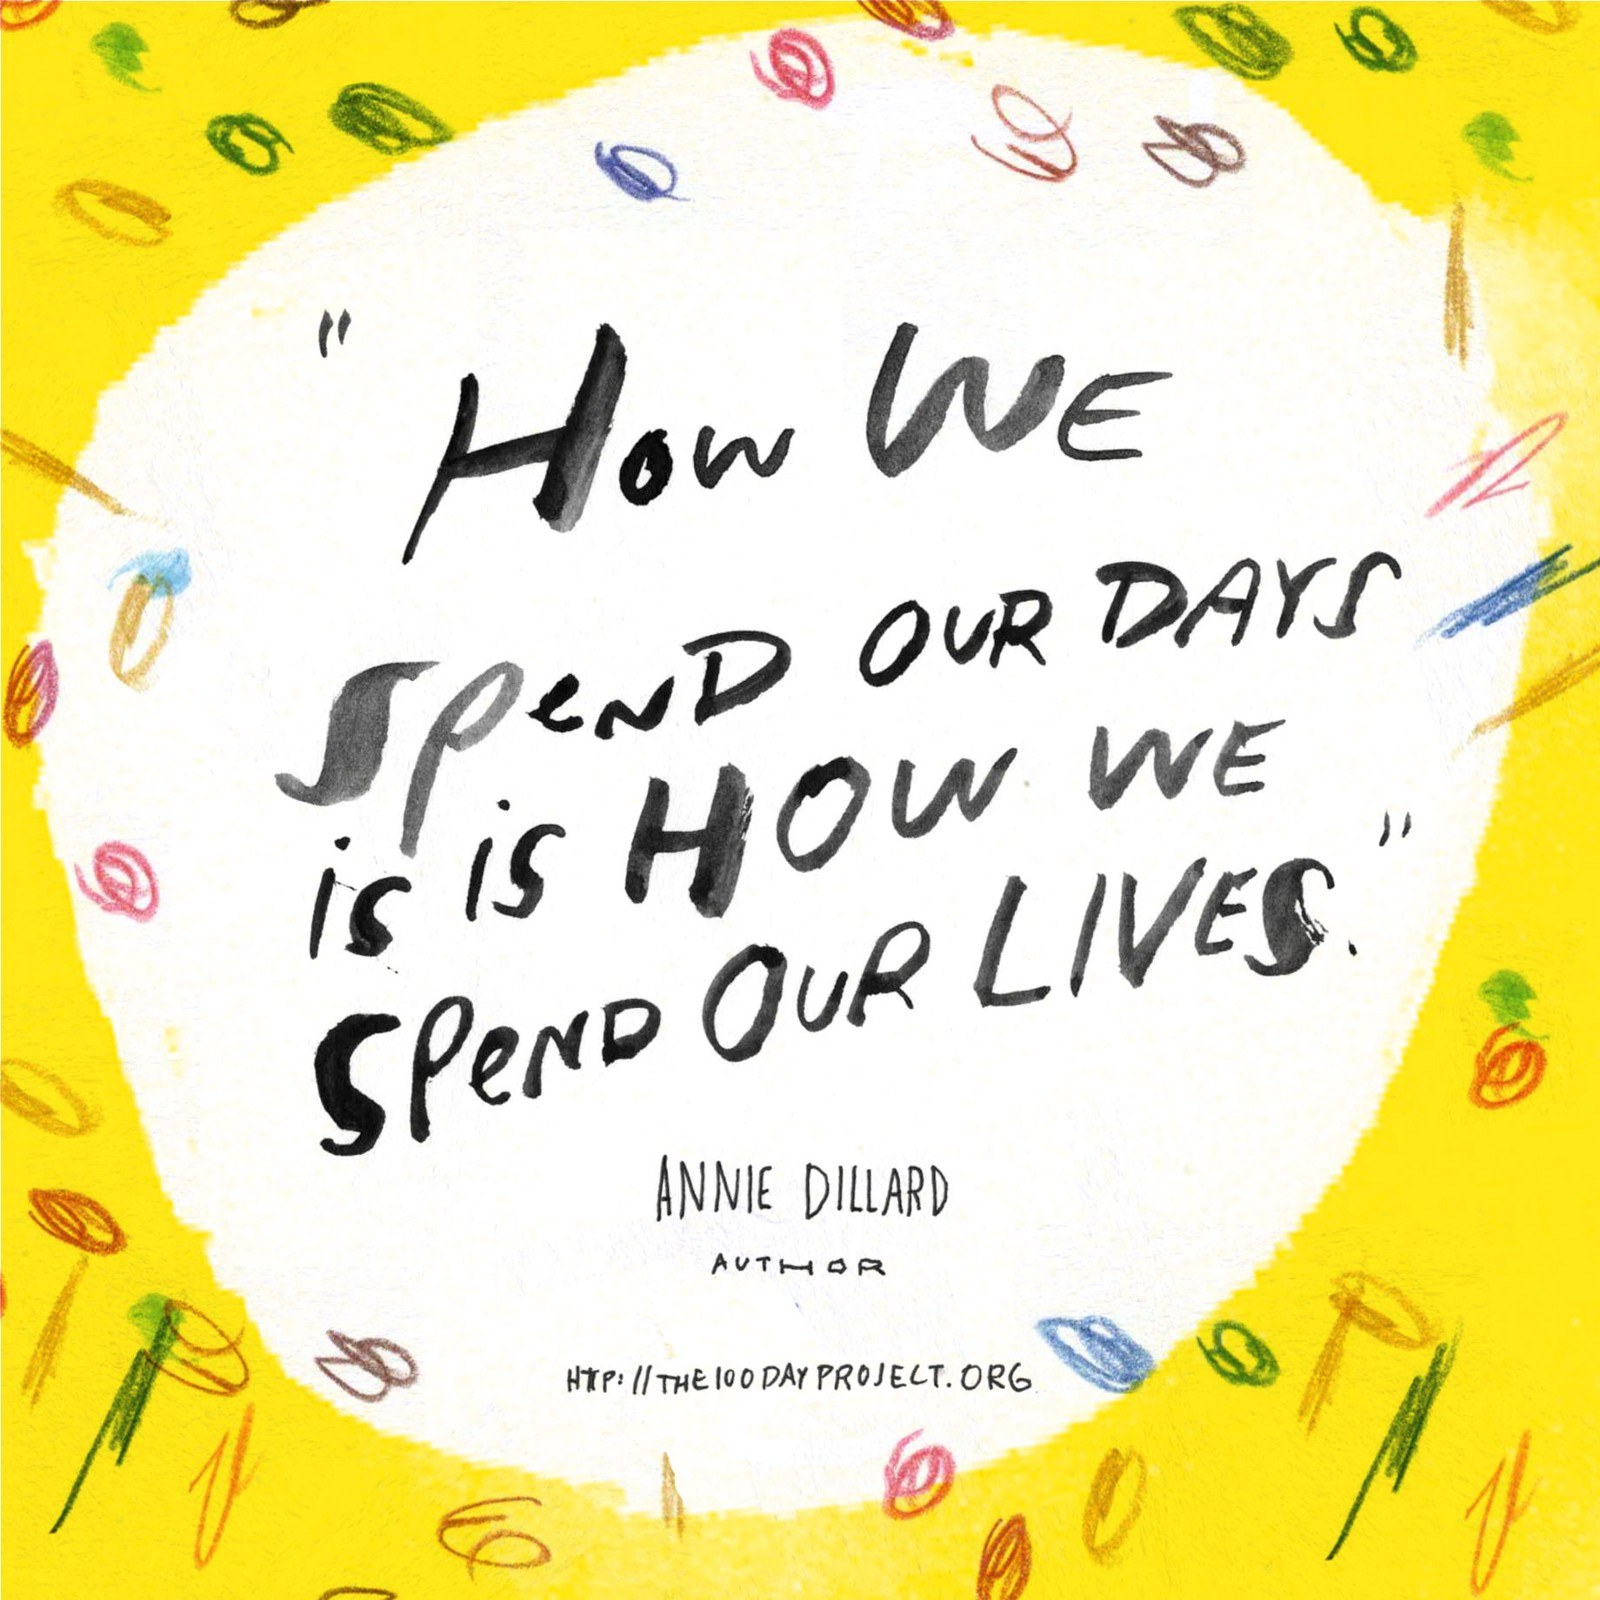 How we spend our days is how we spend our lives.